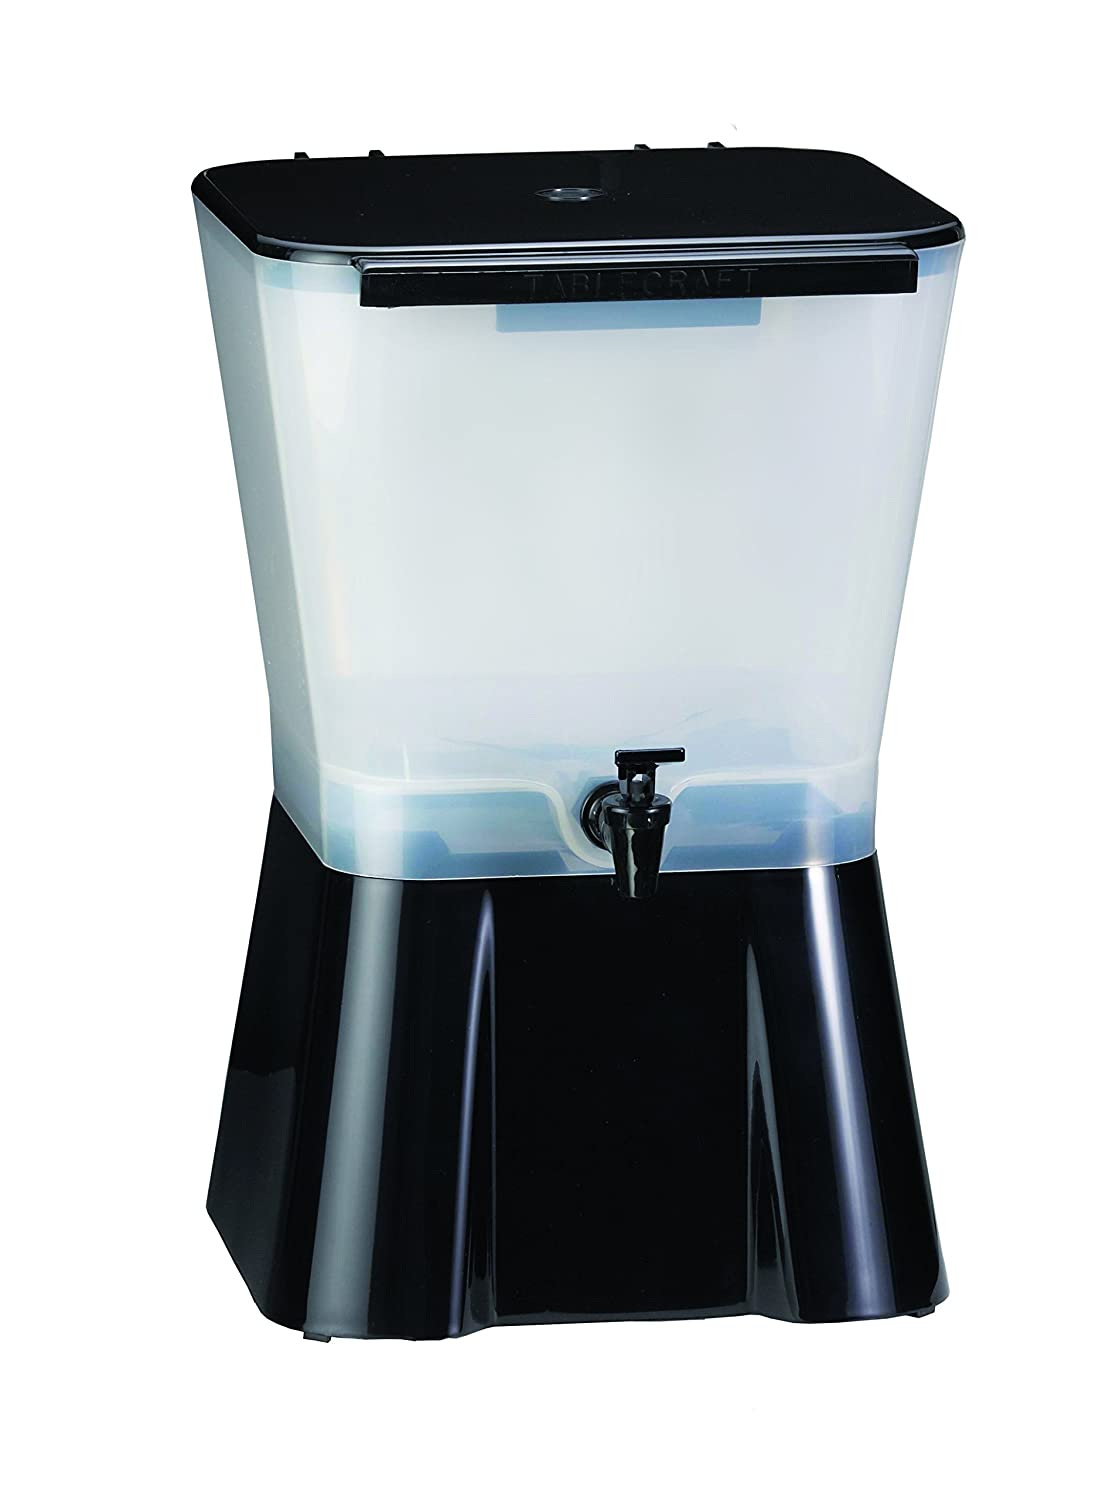 TableCraft H953 3-Gallon Beverage Dispenser Black And Clear